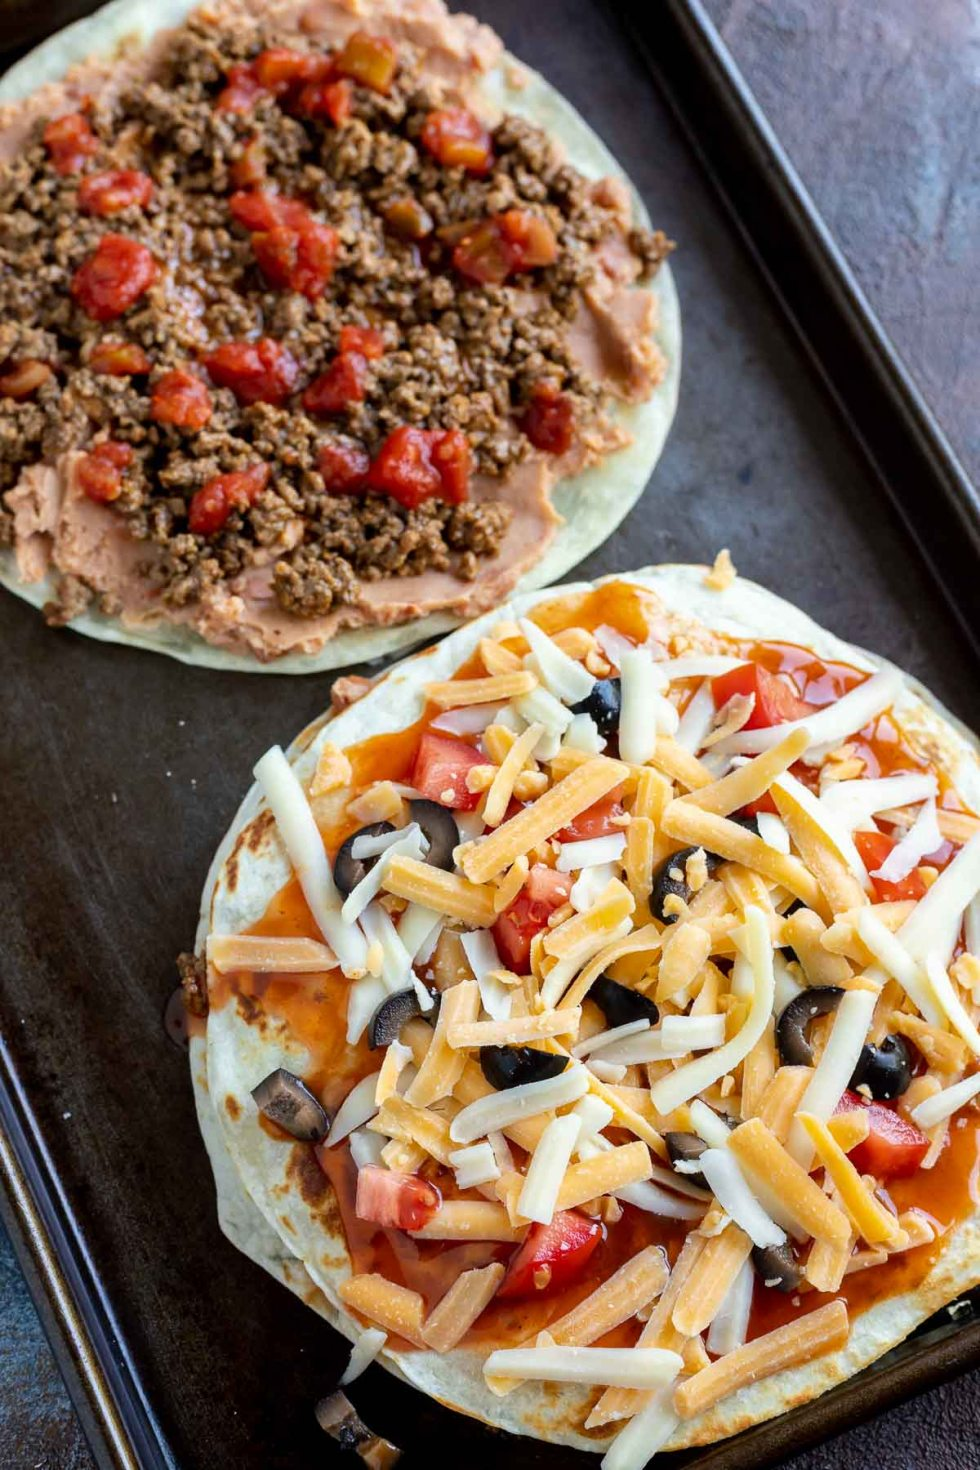 Mexican pizzas partially assembled on baking sheet